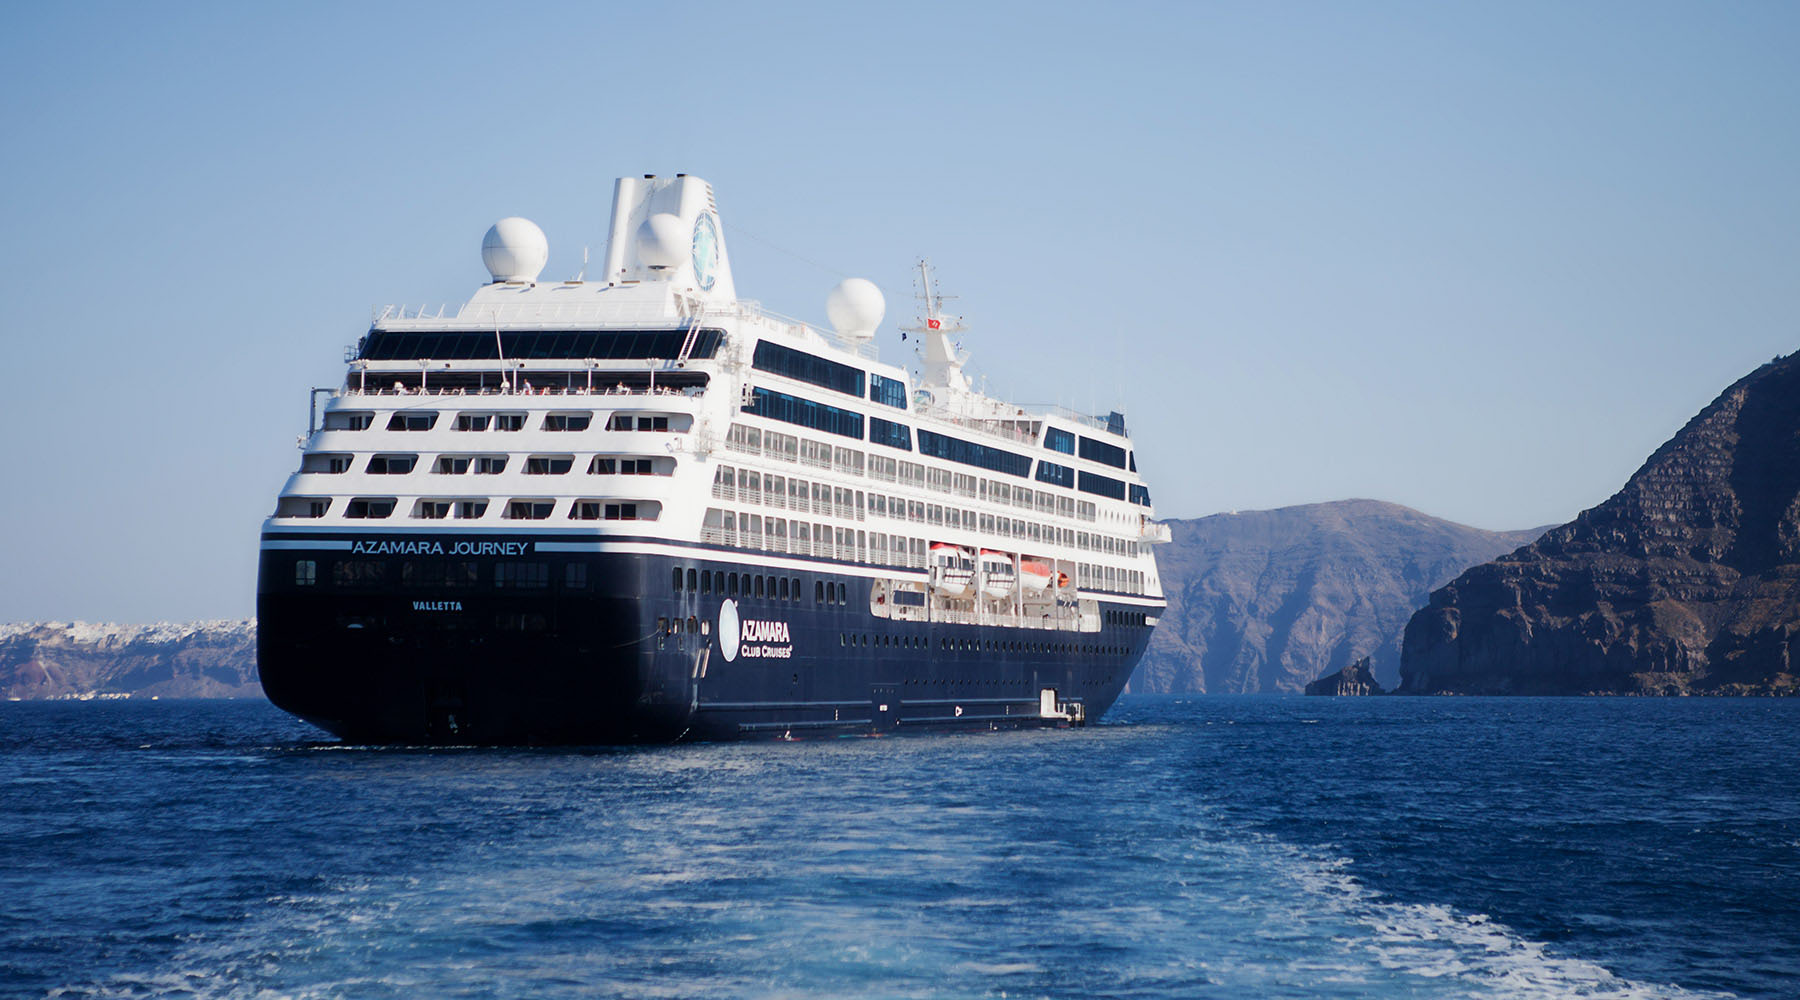 Aboard The Azamara Journey - Part Two